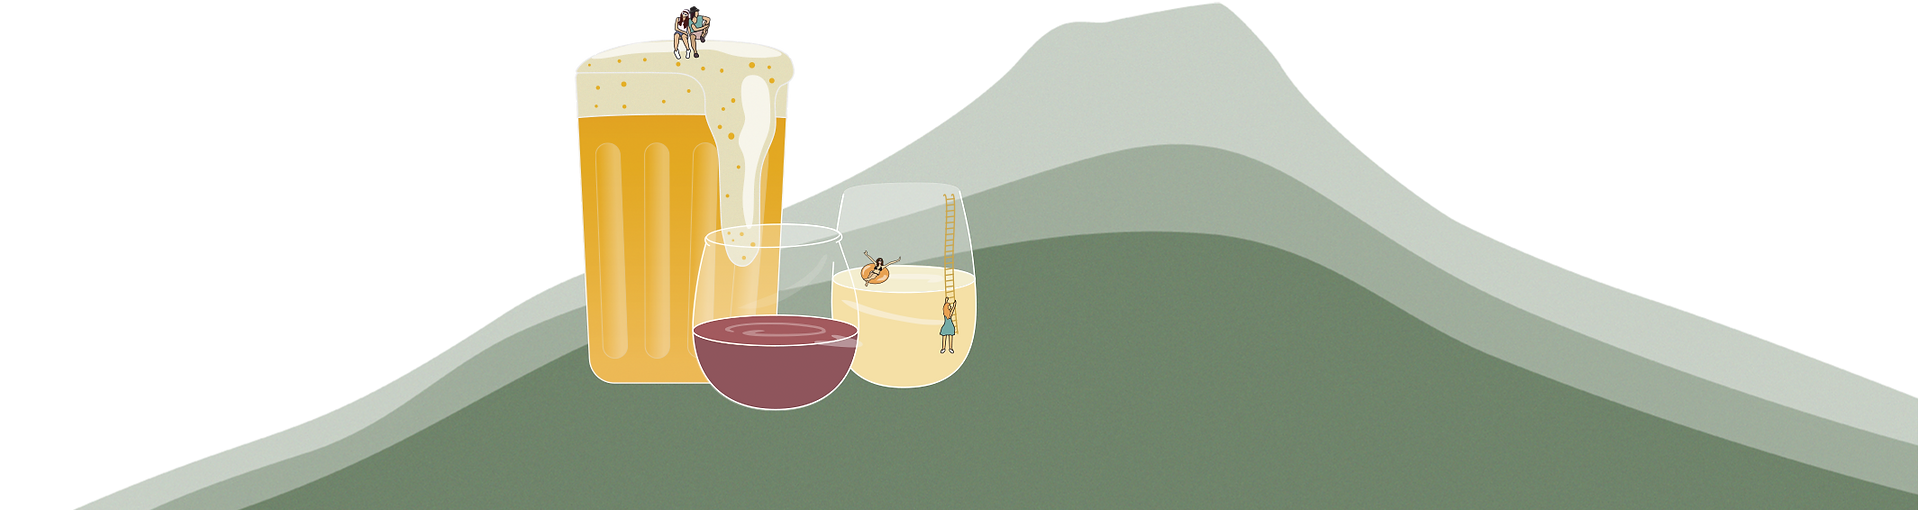 FWE-Mountain-Drink.png